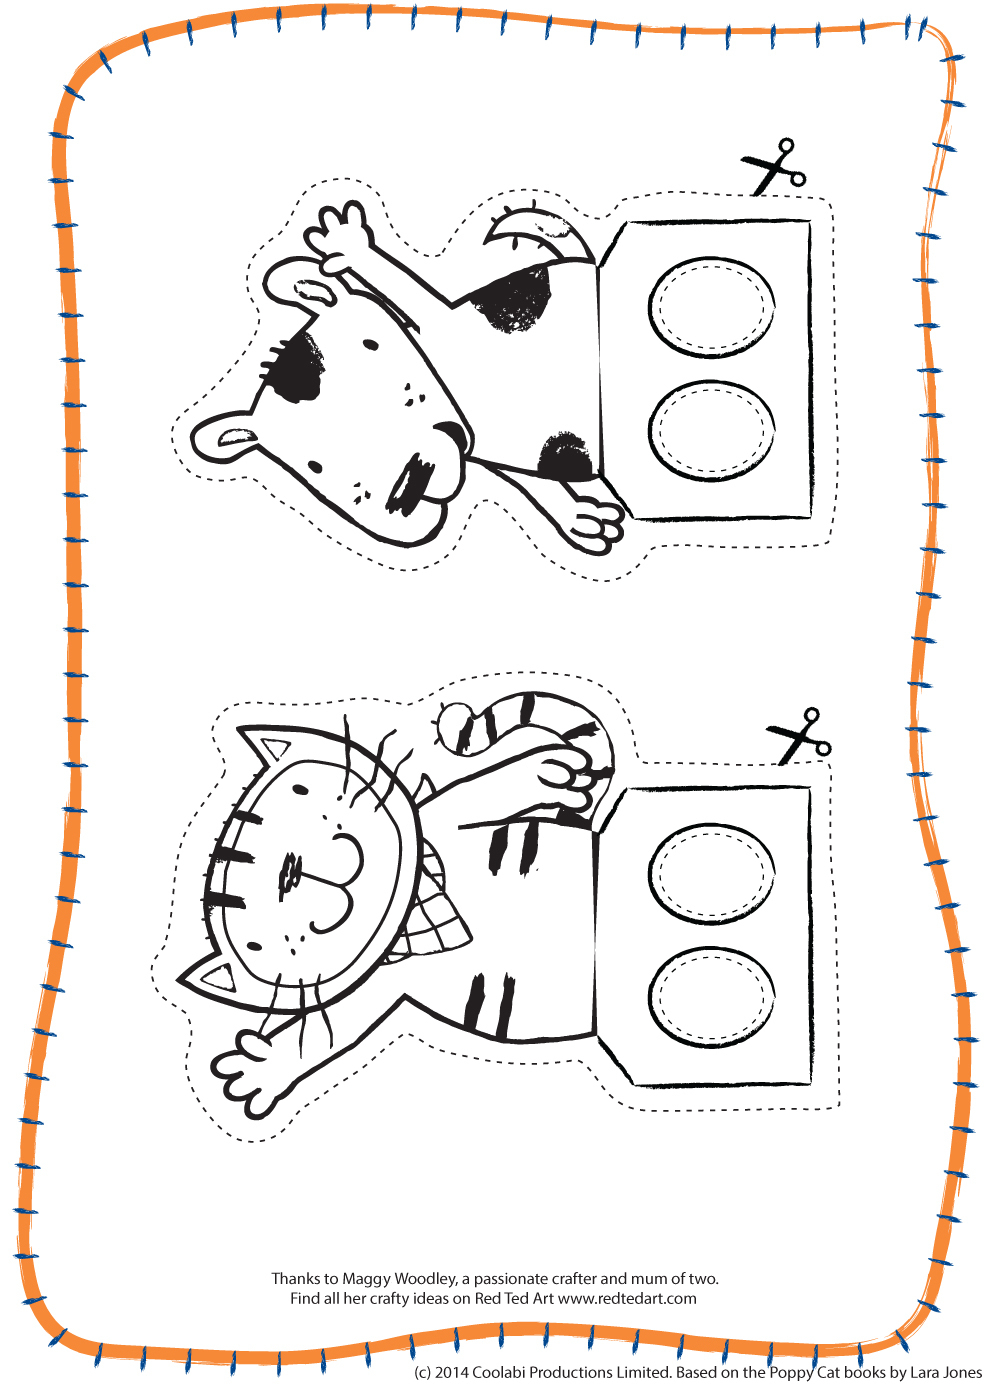 World Cup Crafts - Poppy Cat Finger Football - Red Ted Art's Blog - Free Printable Finger Puppet Templates